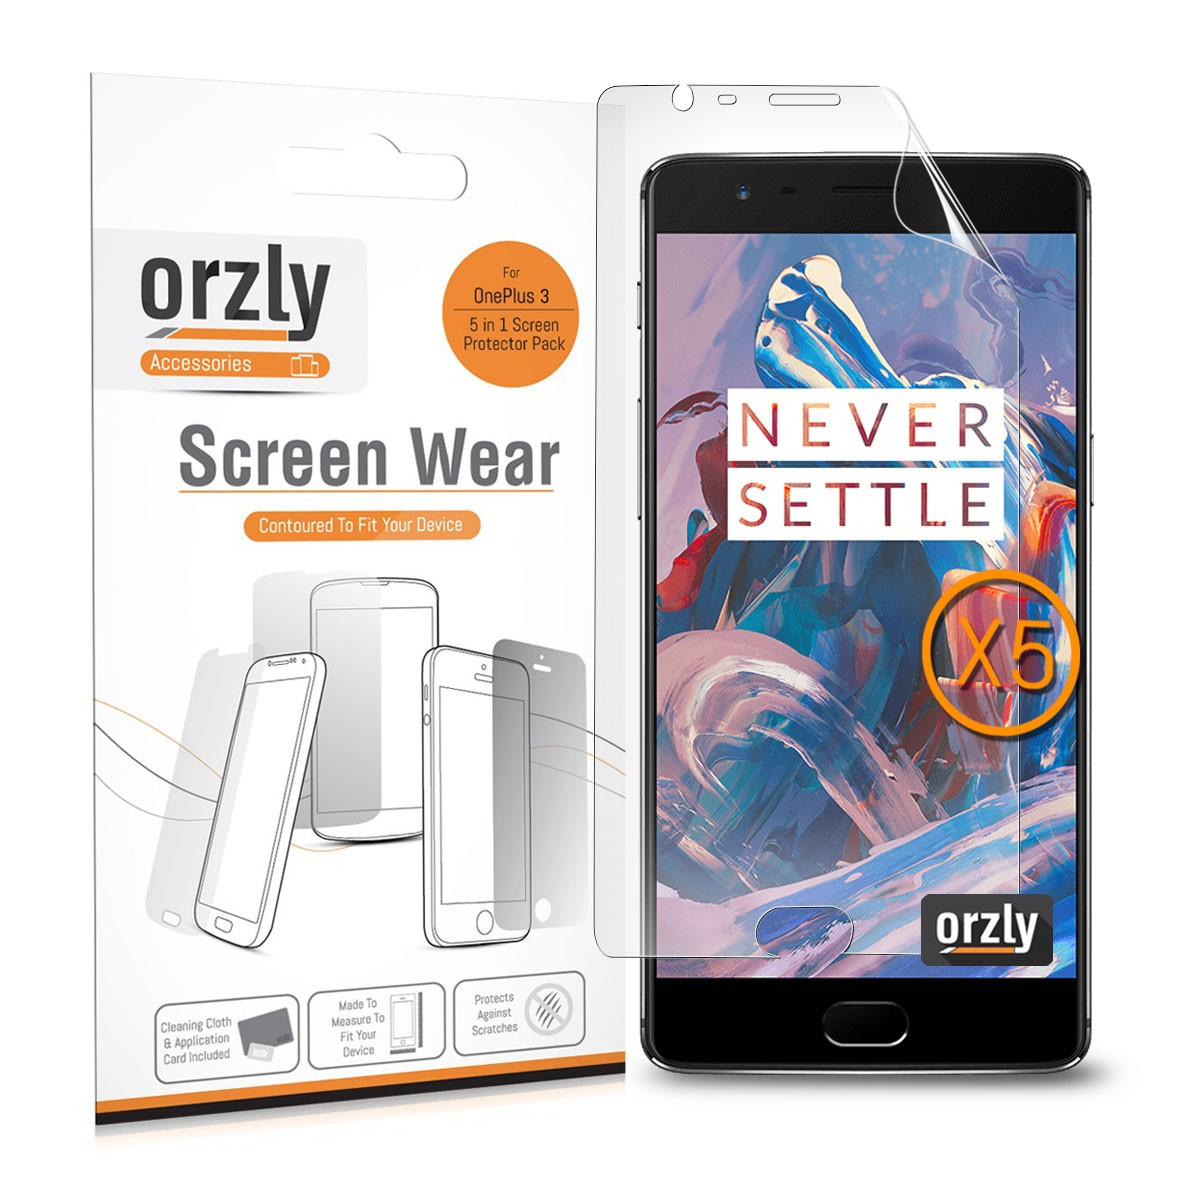 Orzly Screen Wear Pack for OnePlus 3